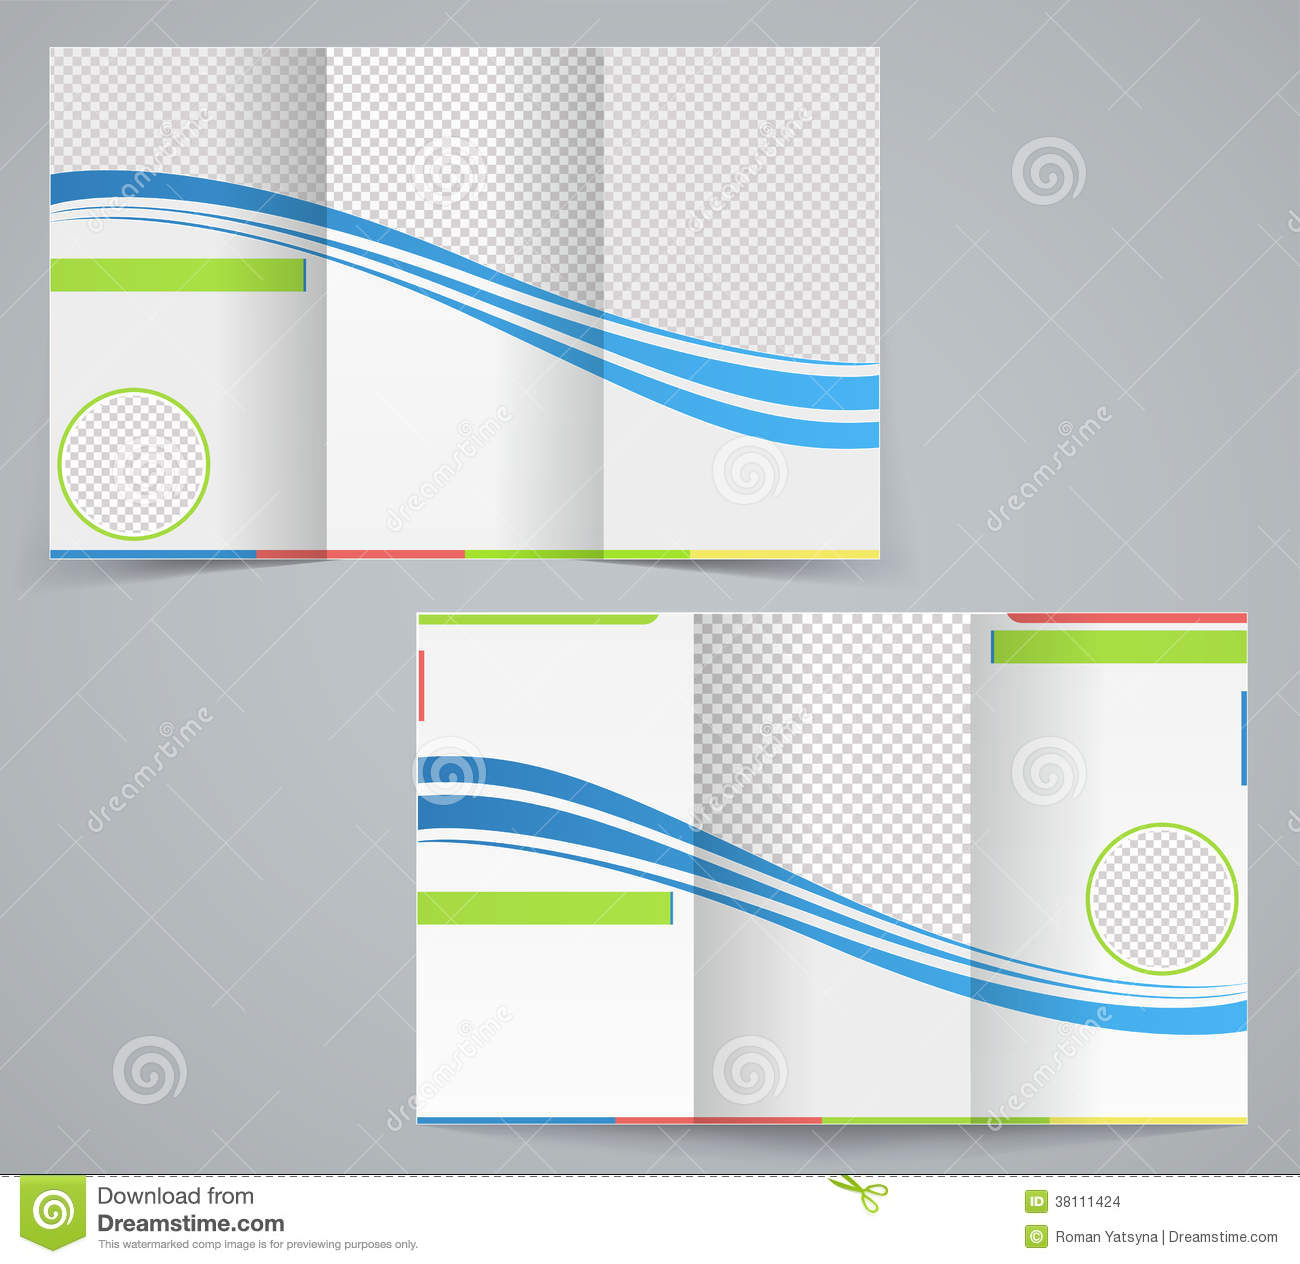 blank tri fold brochure template free download - tri fold business brochure template stock vector